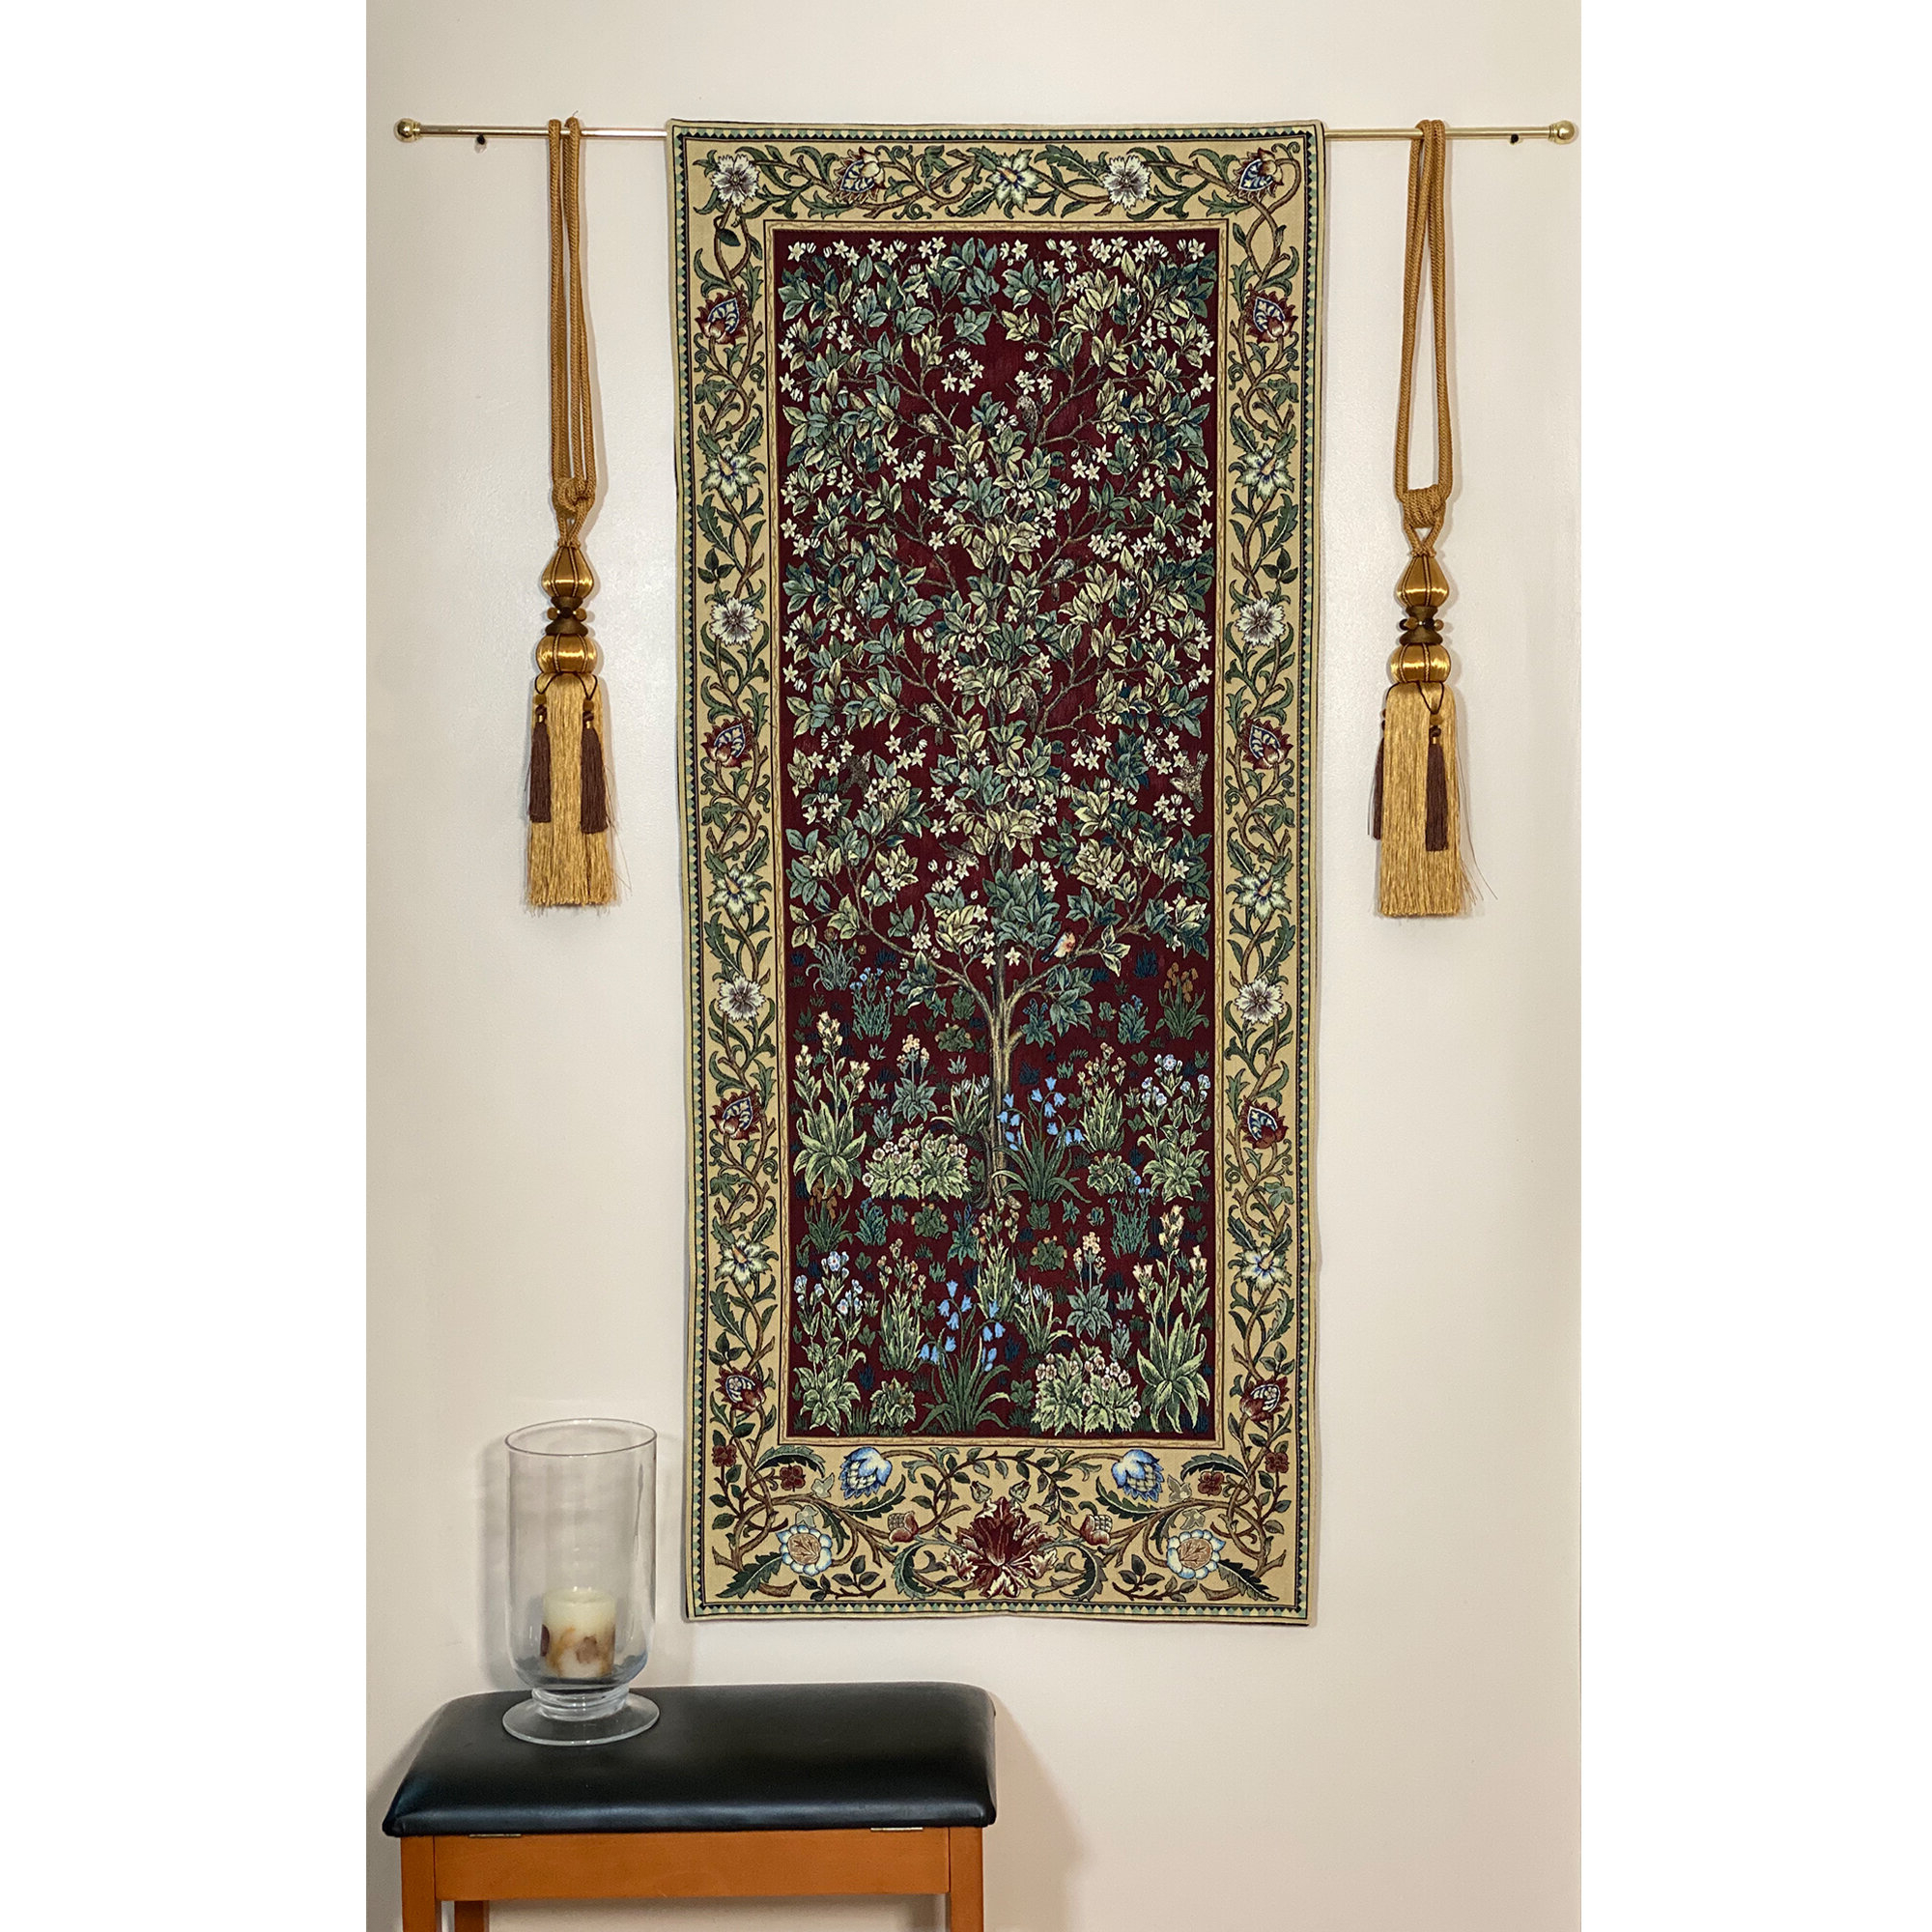 Cotton William Morris Tree Of Life Wall Hanging Within 2019 Blended Fabric Klimt Tree Of Life Wall Hangings (View 20 of 20)